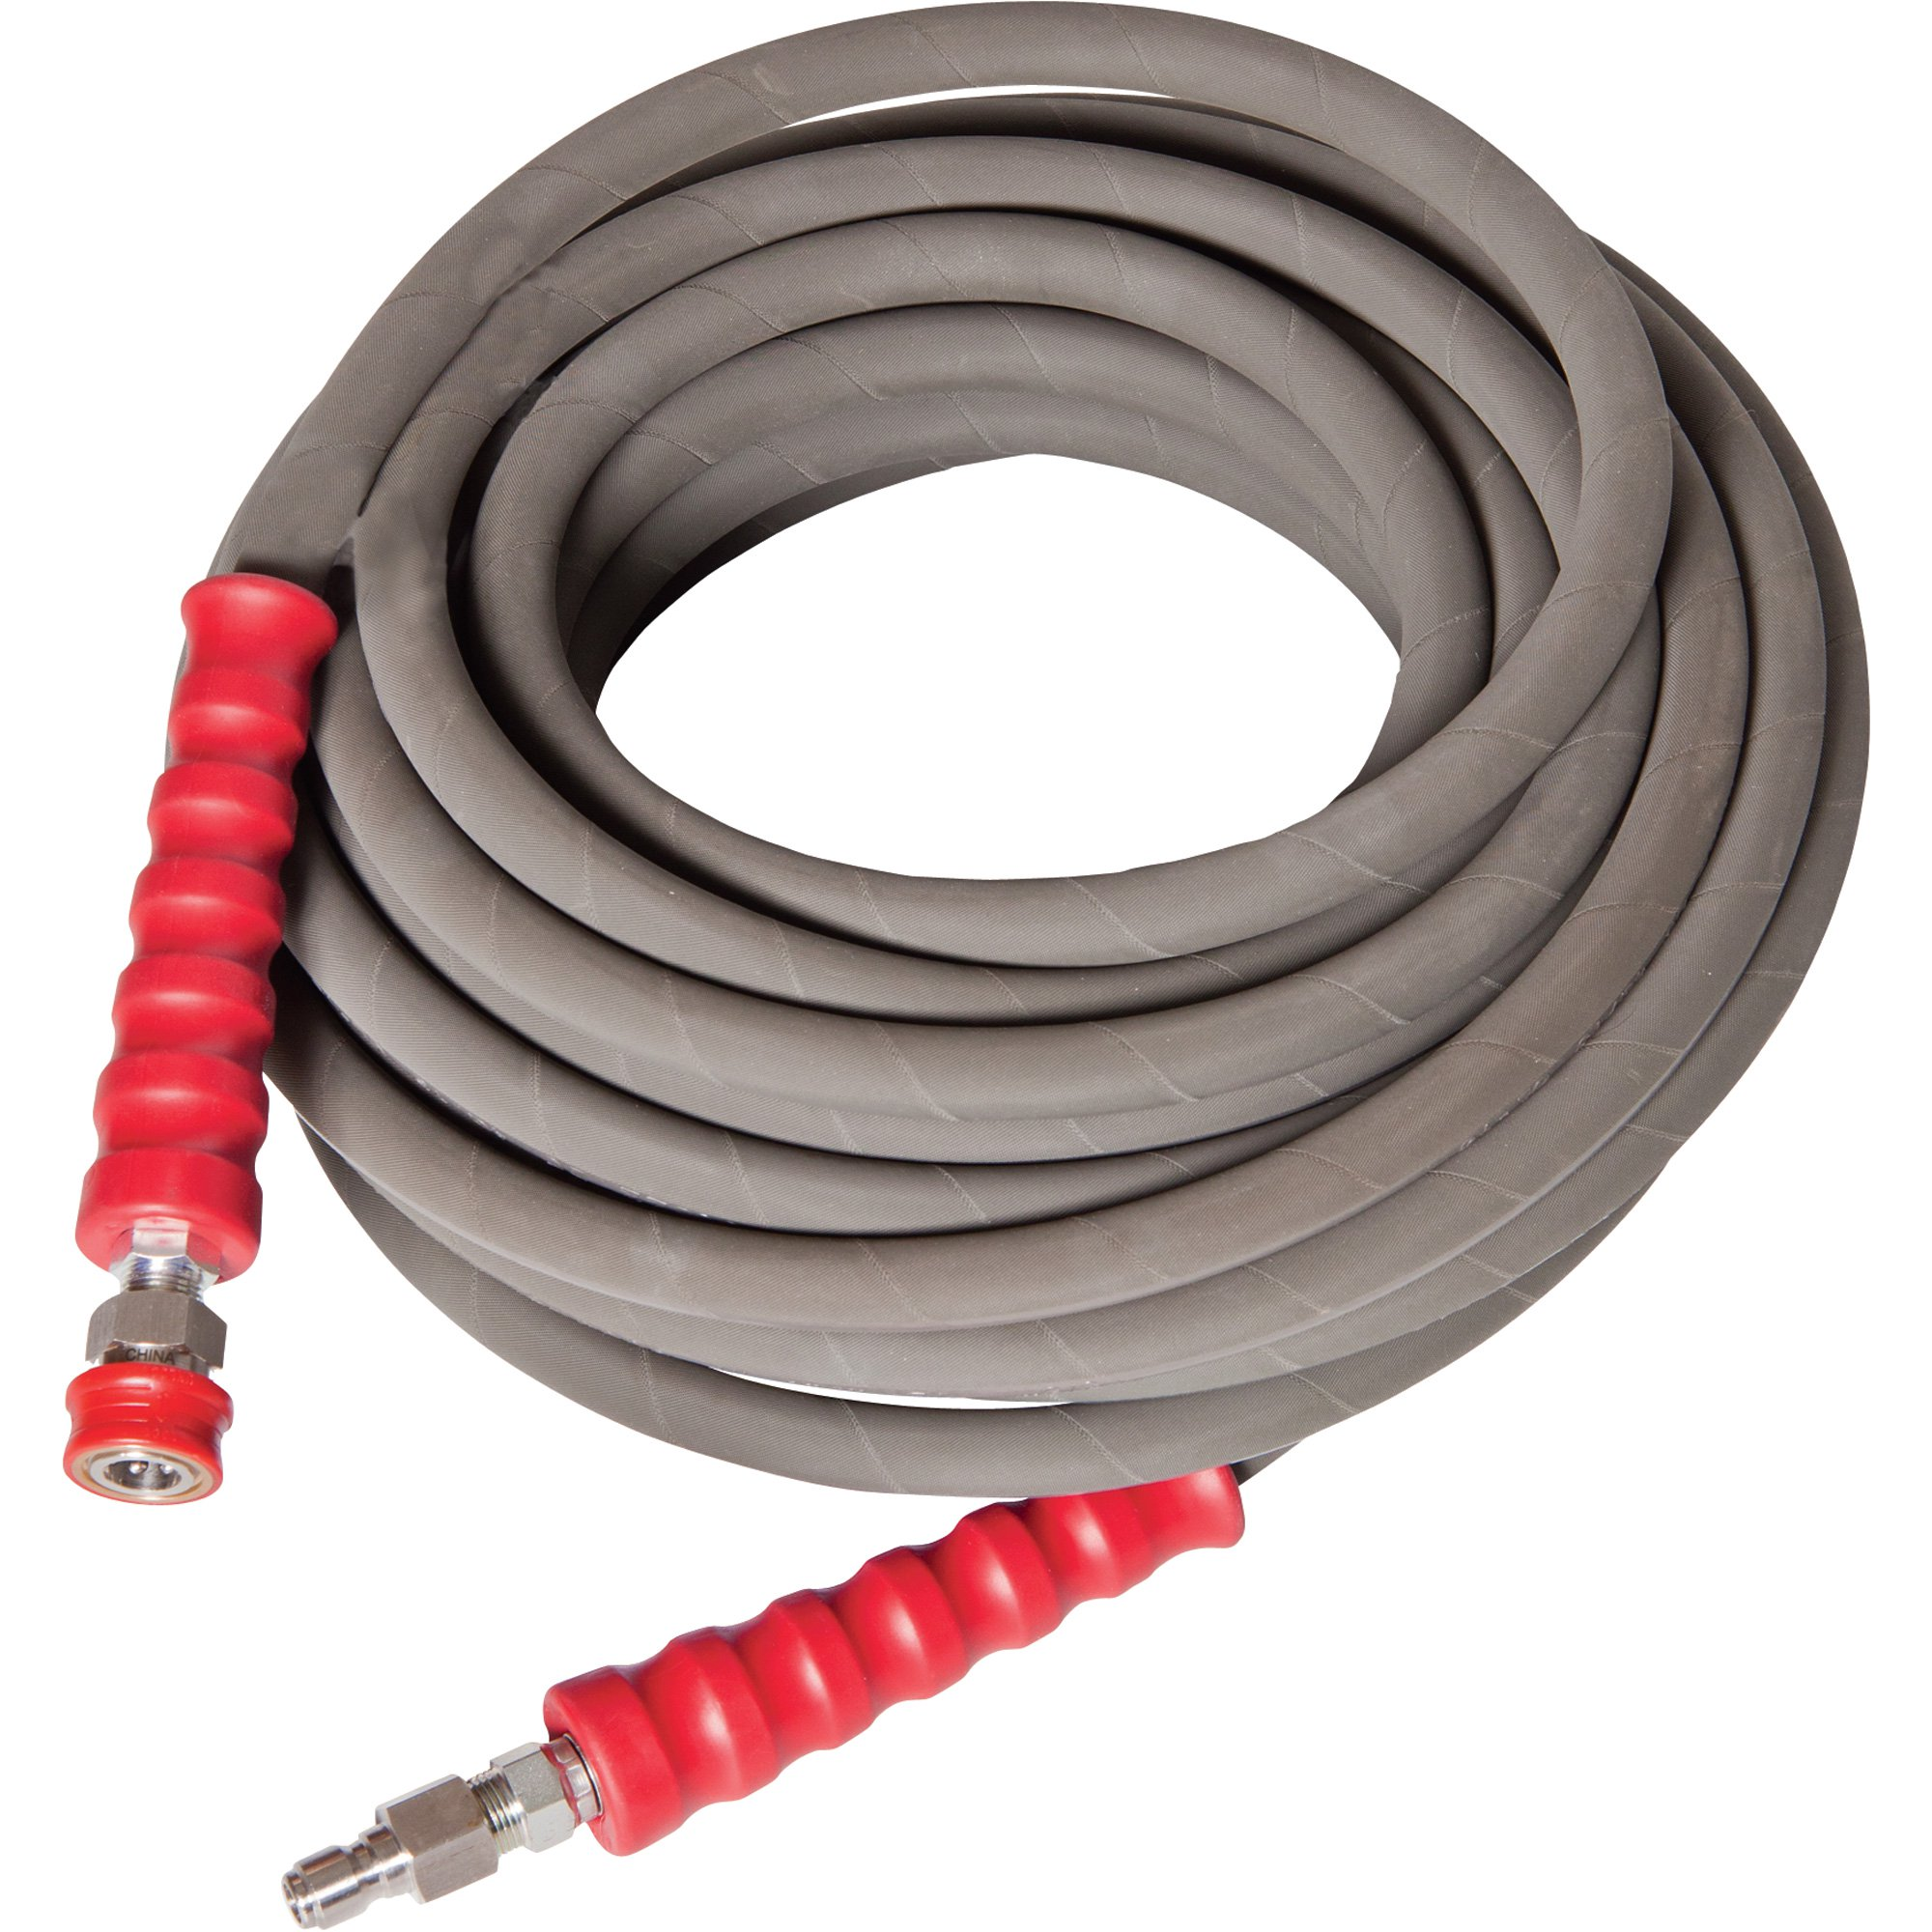 NorthStar Hot Water Nonmarking Pressure Washer Hose — 6000 PSI 50ft. x 3/8in. - 42946 - 989401984